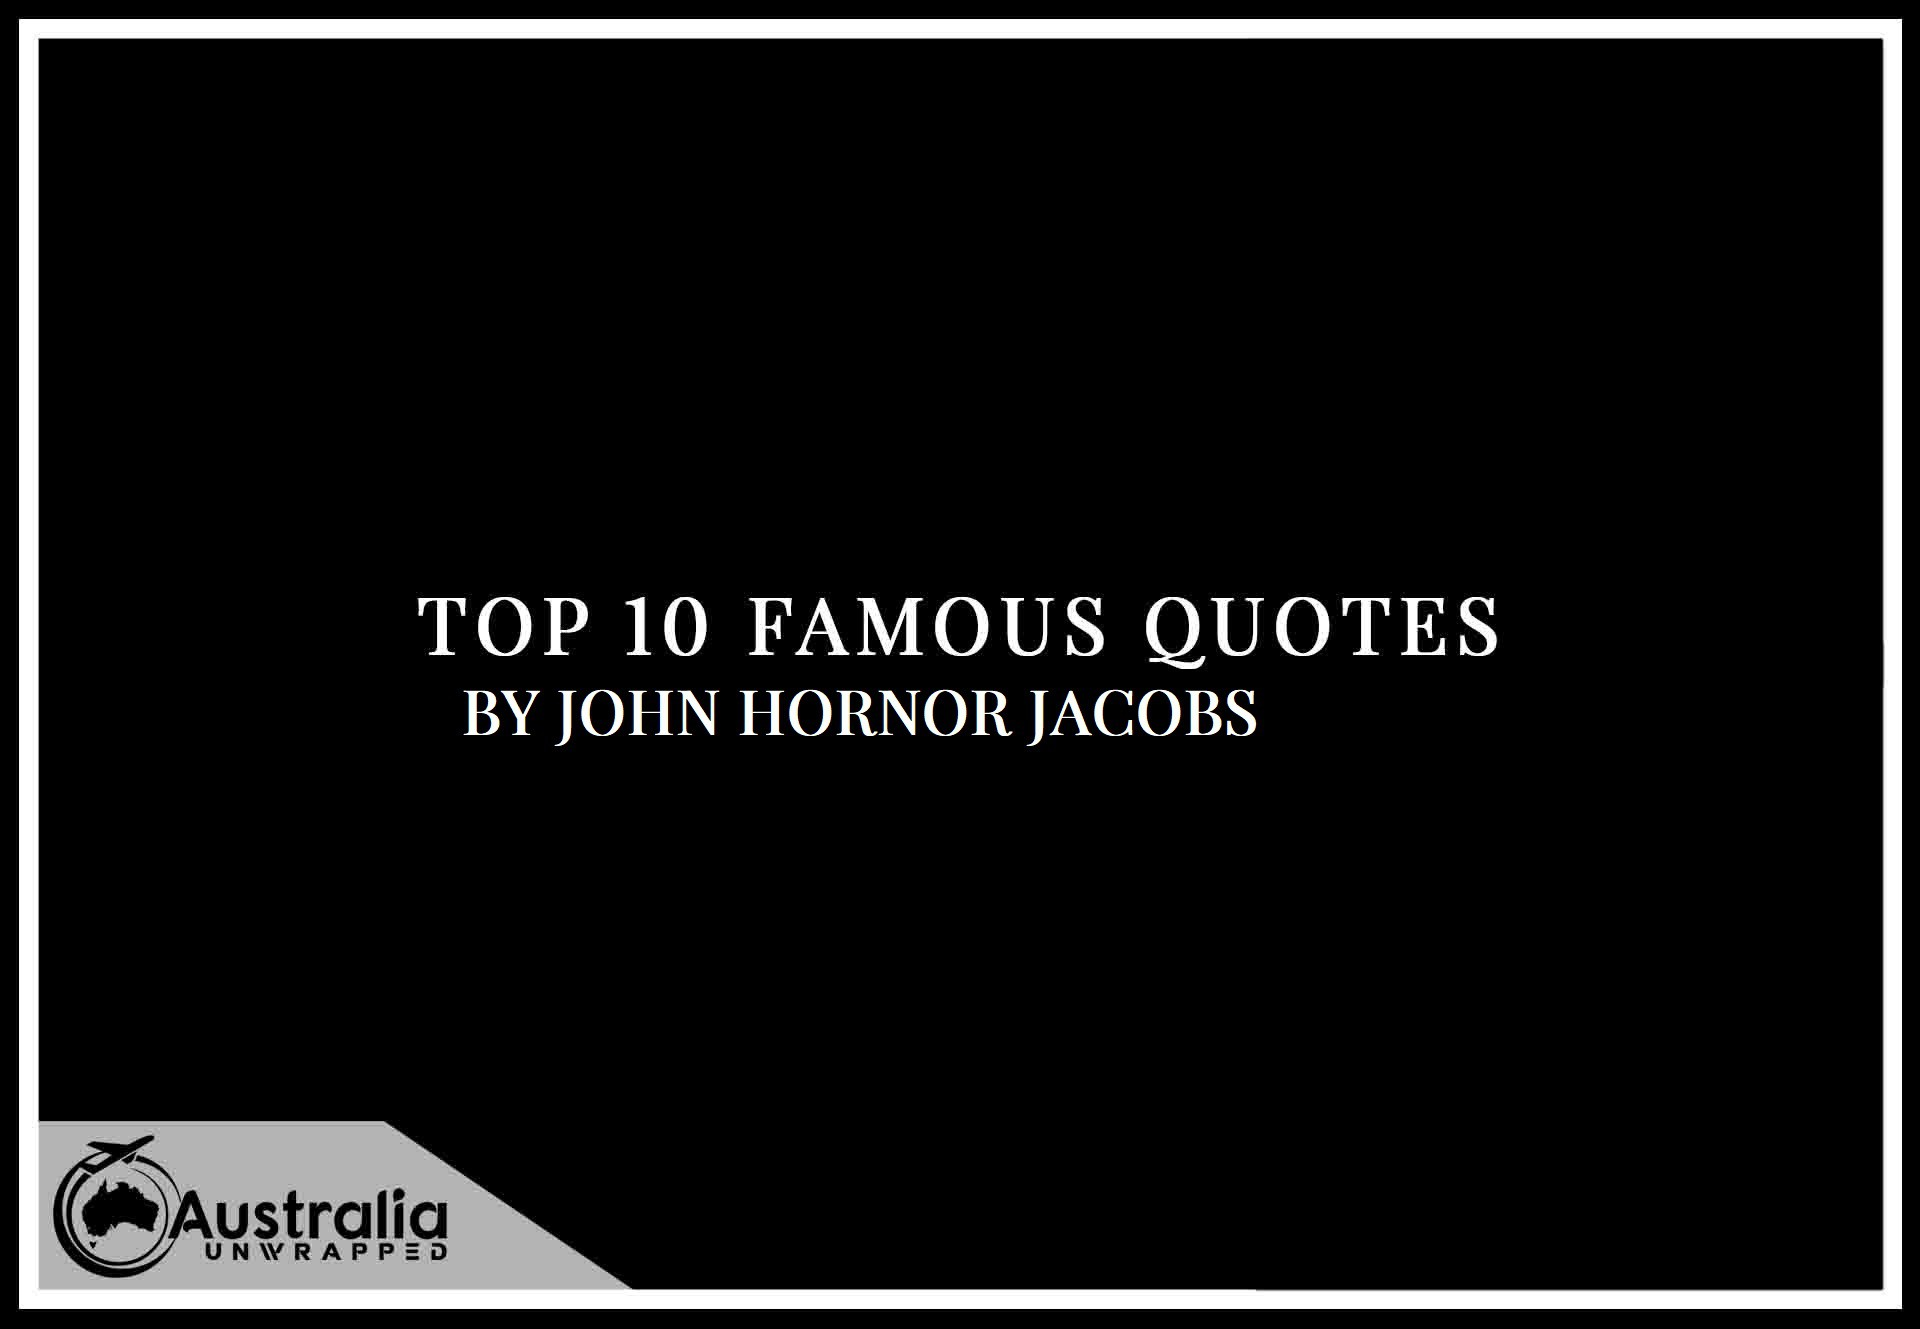 Top 10 Famous Quotes by Author John Hornor Jacobs